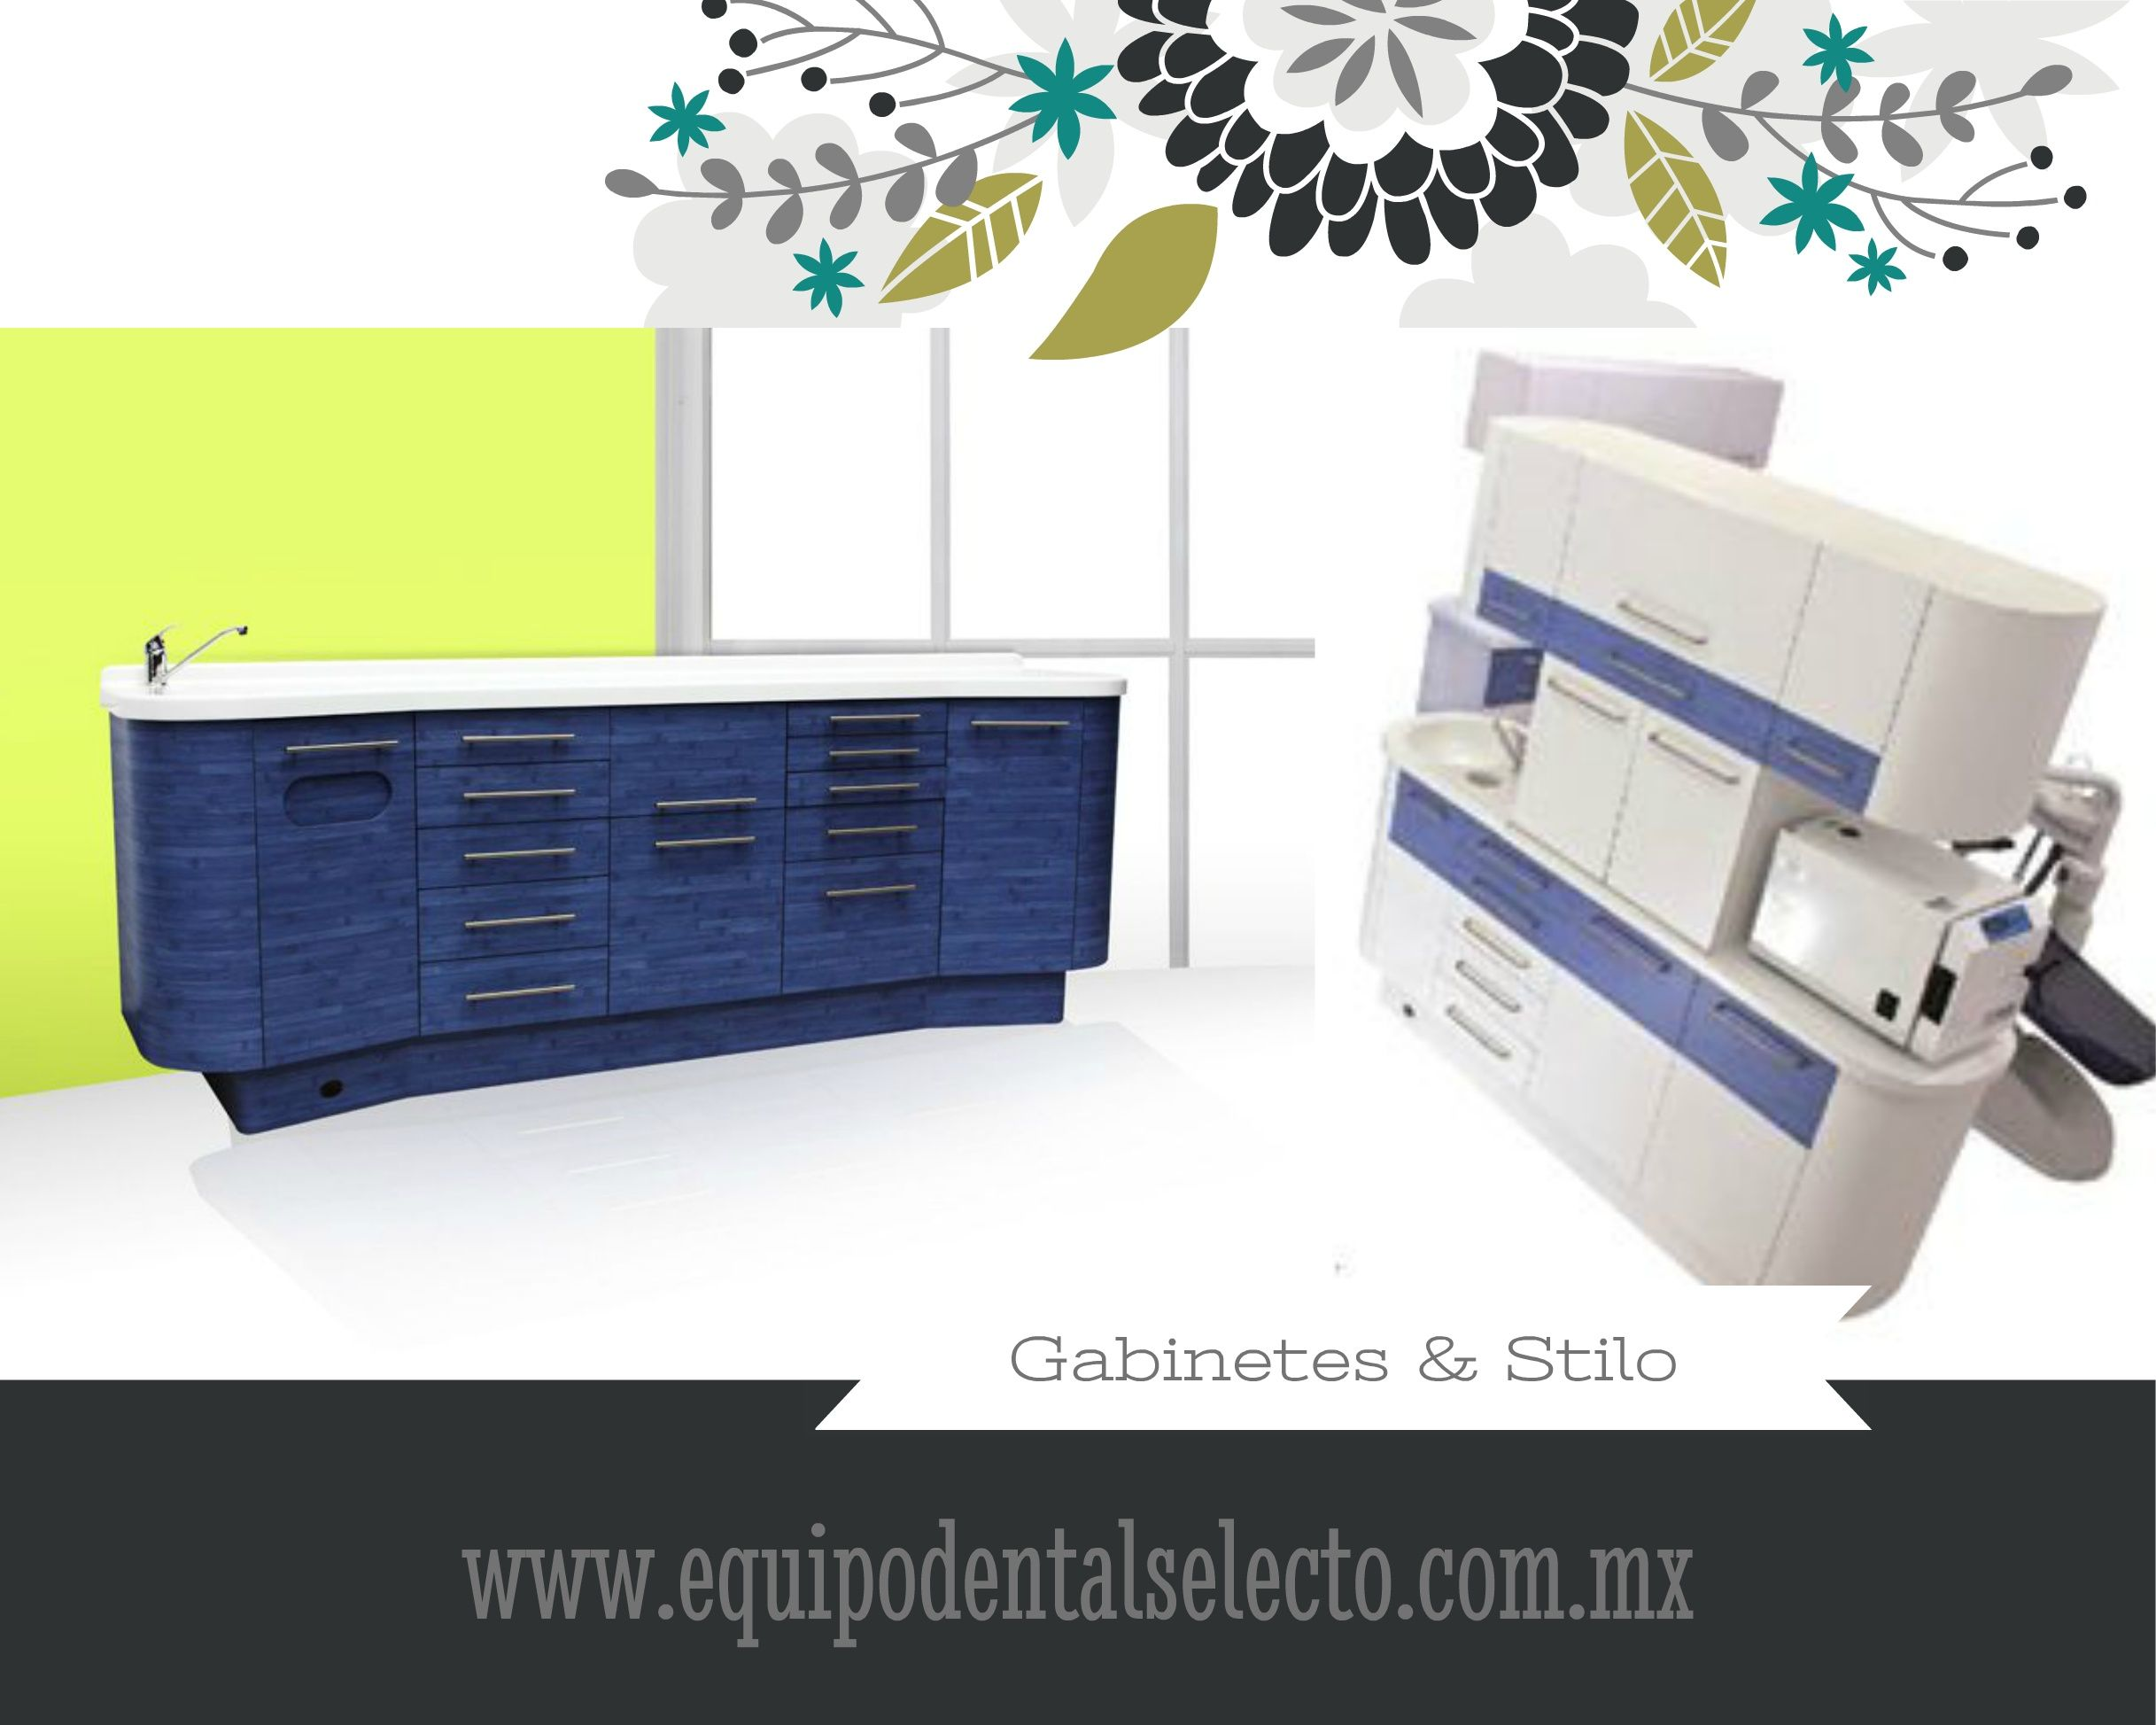 Muebles Dentales Selecto - Pin De Equipo Dental Selecto En Muebles Para Consultorio Dental [mjhdah]https://sc01.alicdn.com/kf/HTB1.gaqfkSWBuNjSszdq6zeSpXaH/Customized-hospital-Combination-Cabinet-Dental-Cabinet-Furniture.jpg